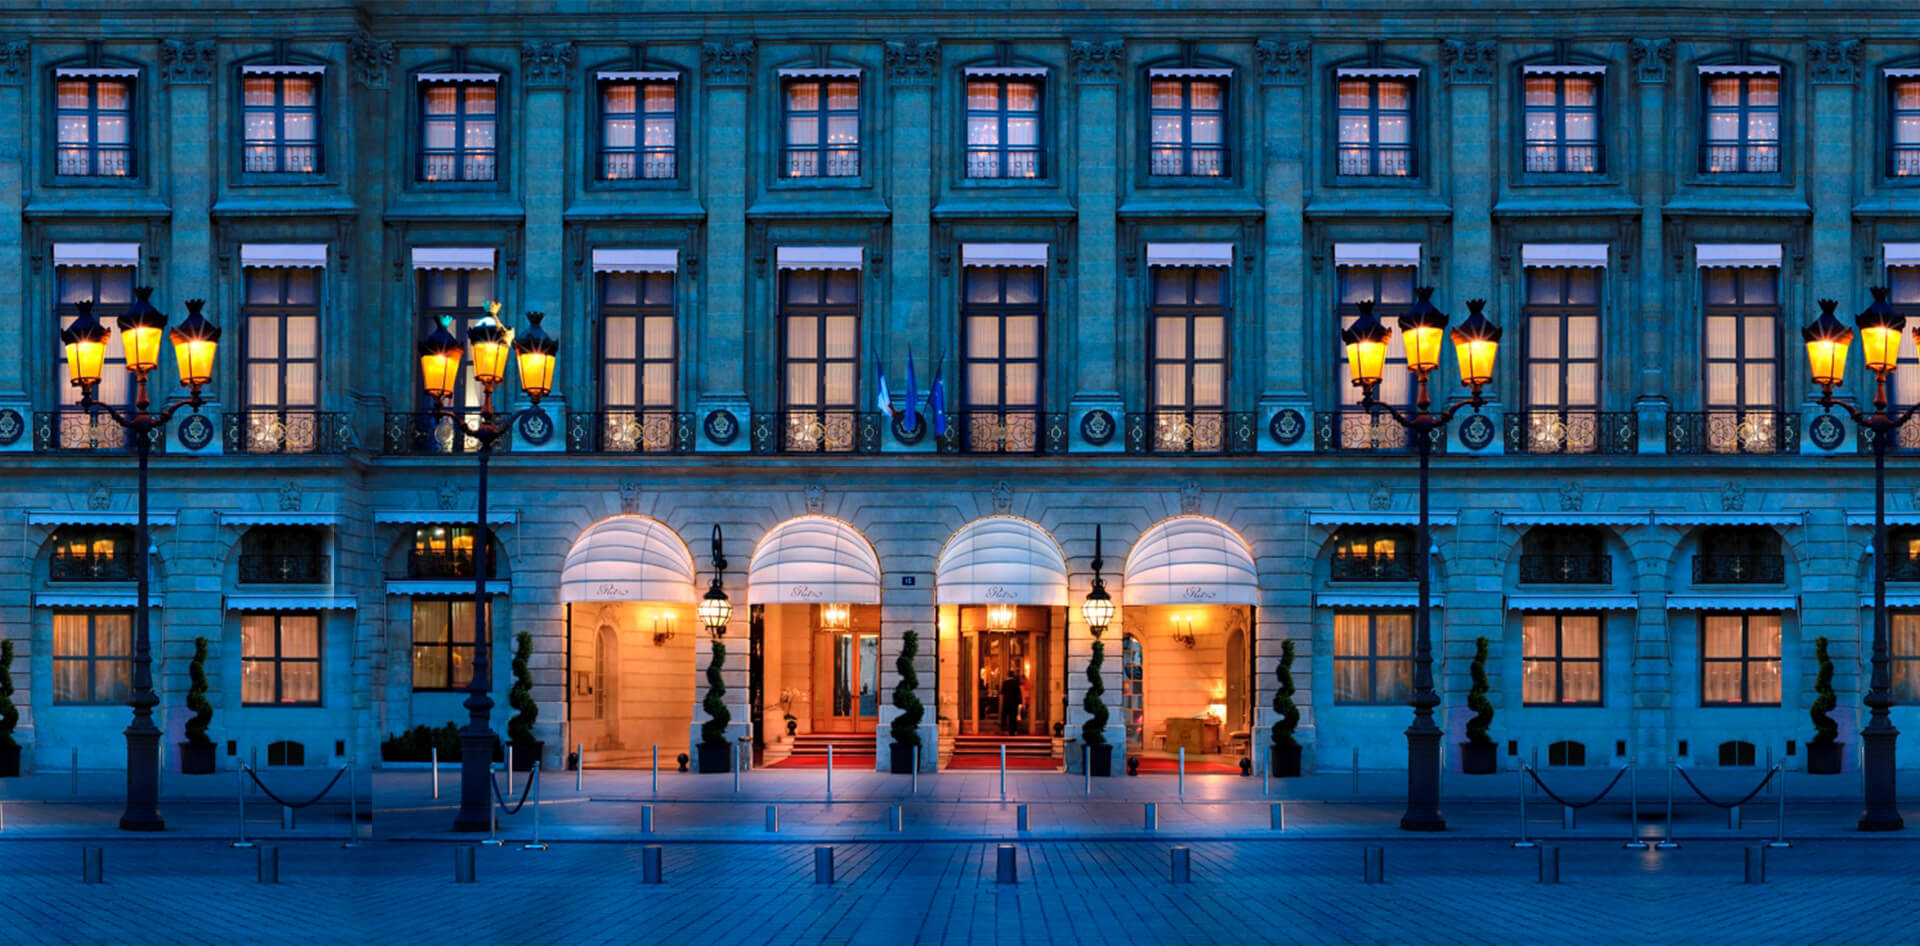 Ritz hotel on Place Vendôme in Paris